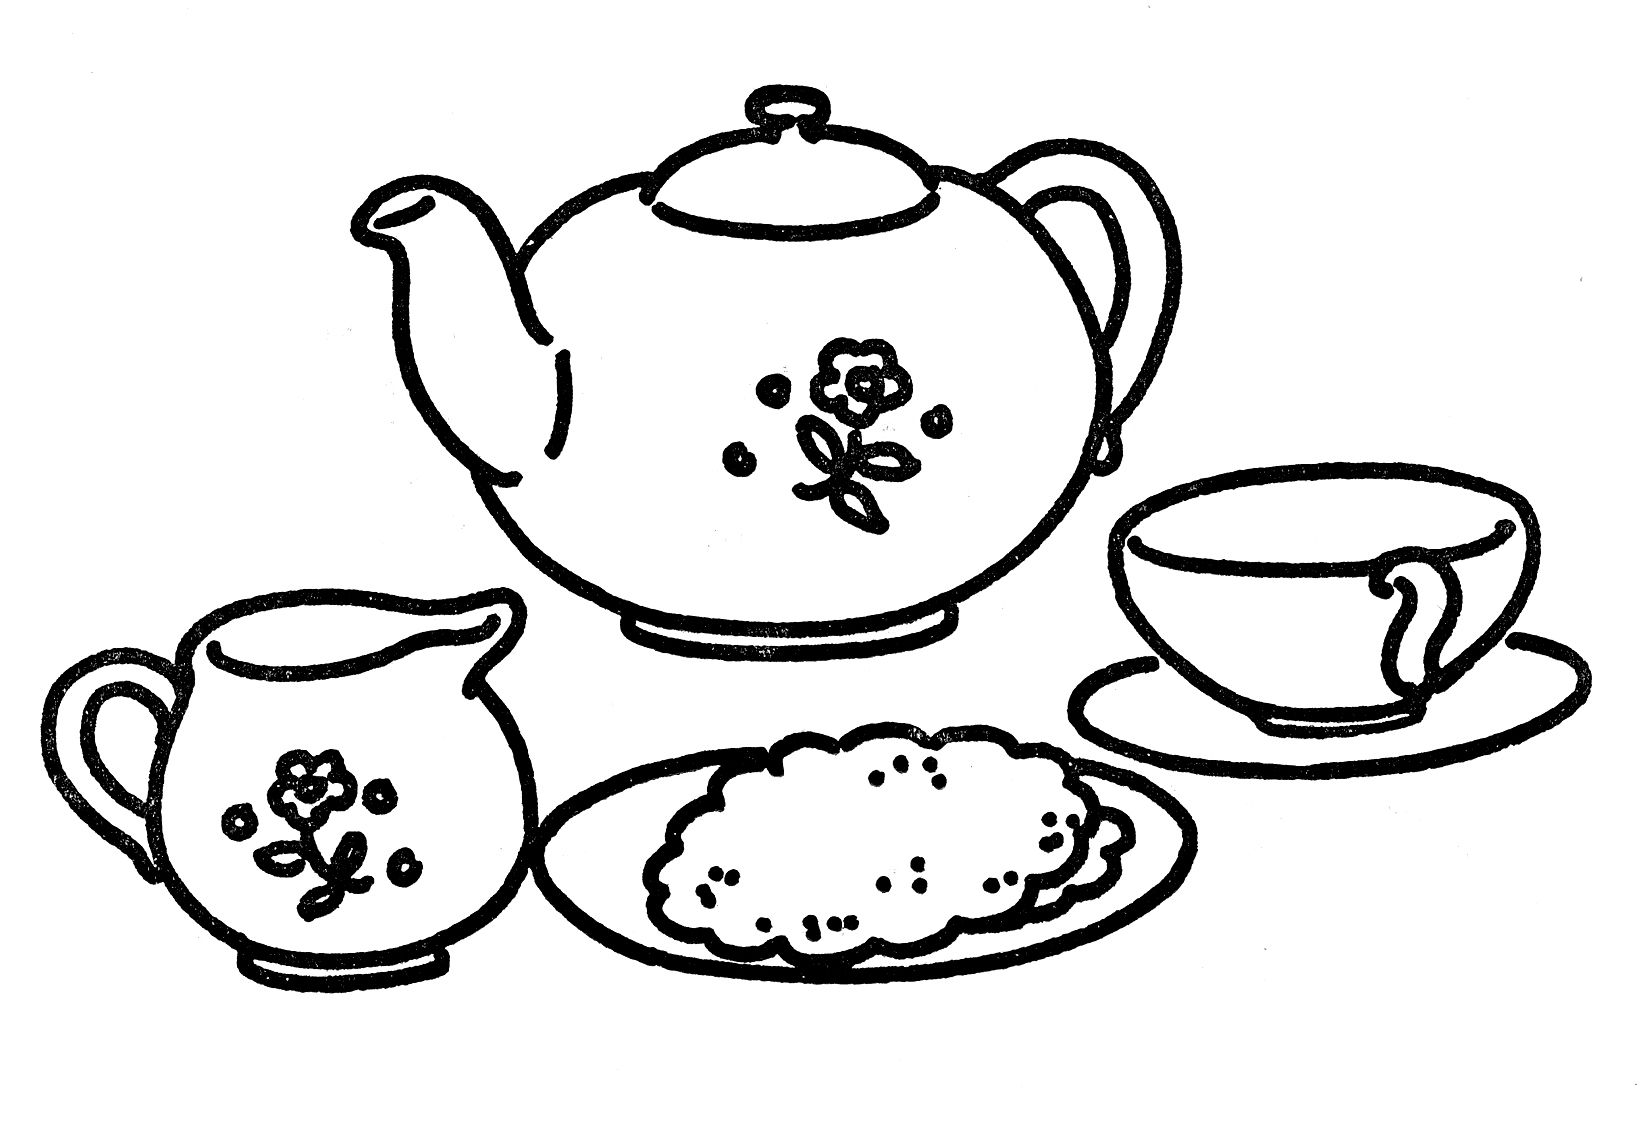 1650x1125 Awesome Tea Set Coloring Page Design Printable Coloring Sheet